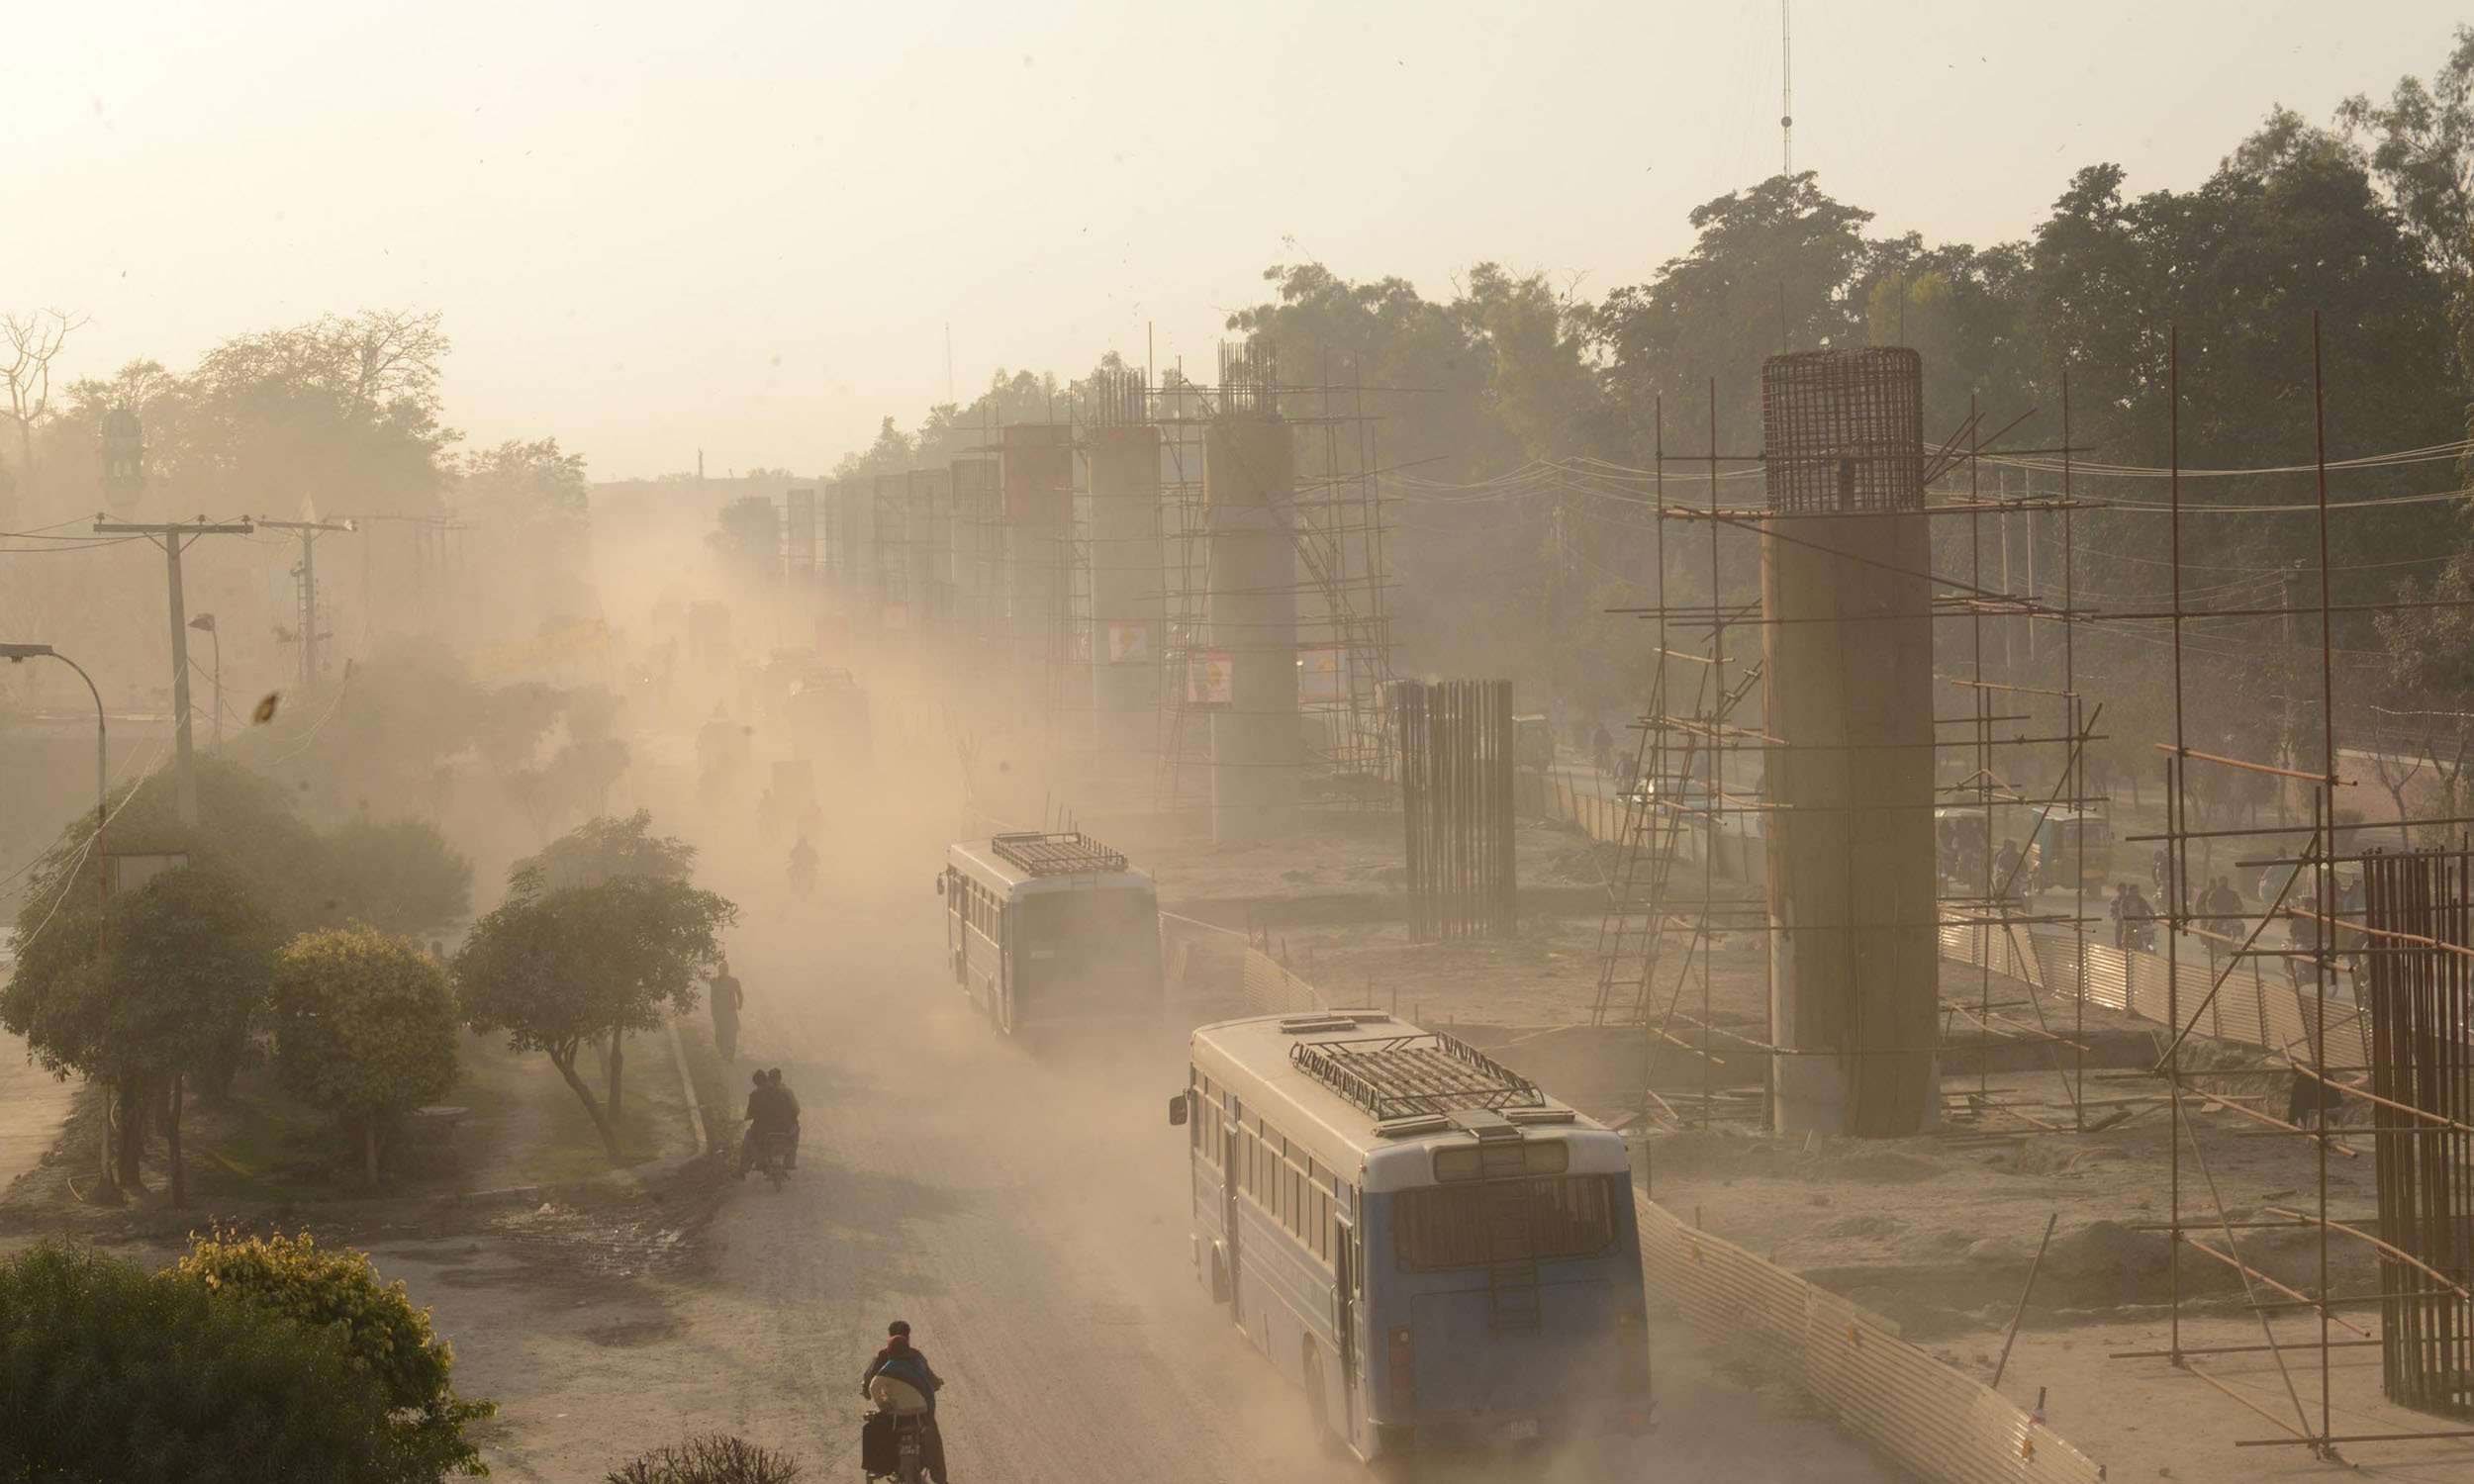 An overhead bridge being constructed for the Orange Line project in Lahore | Azhar Jafferi, White Star